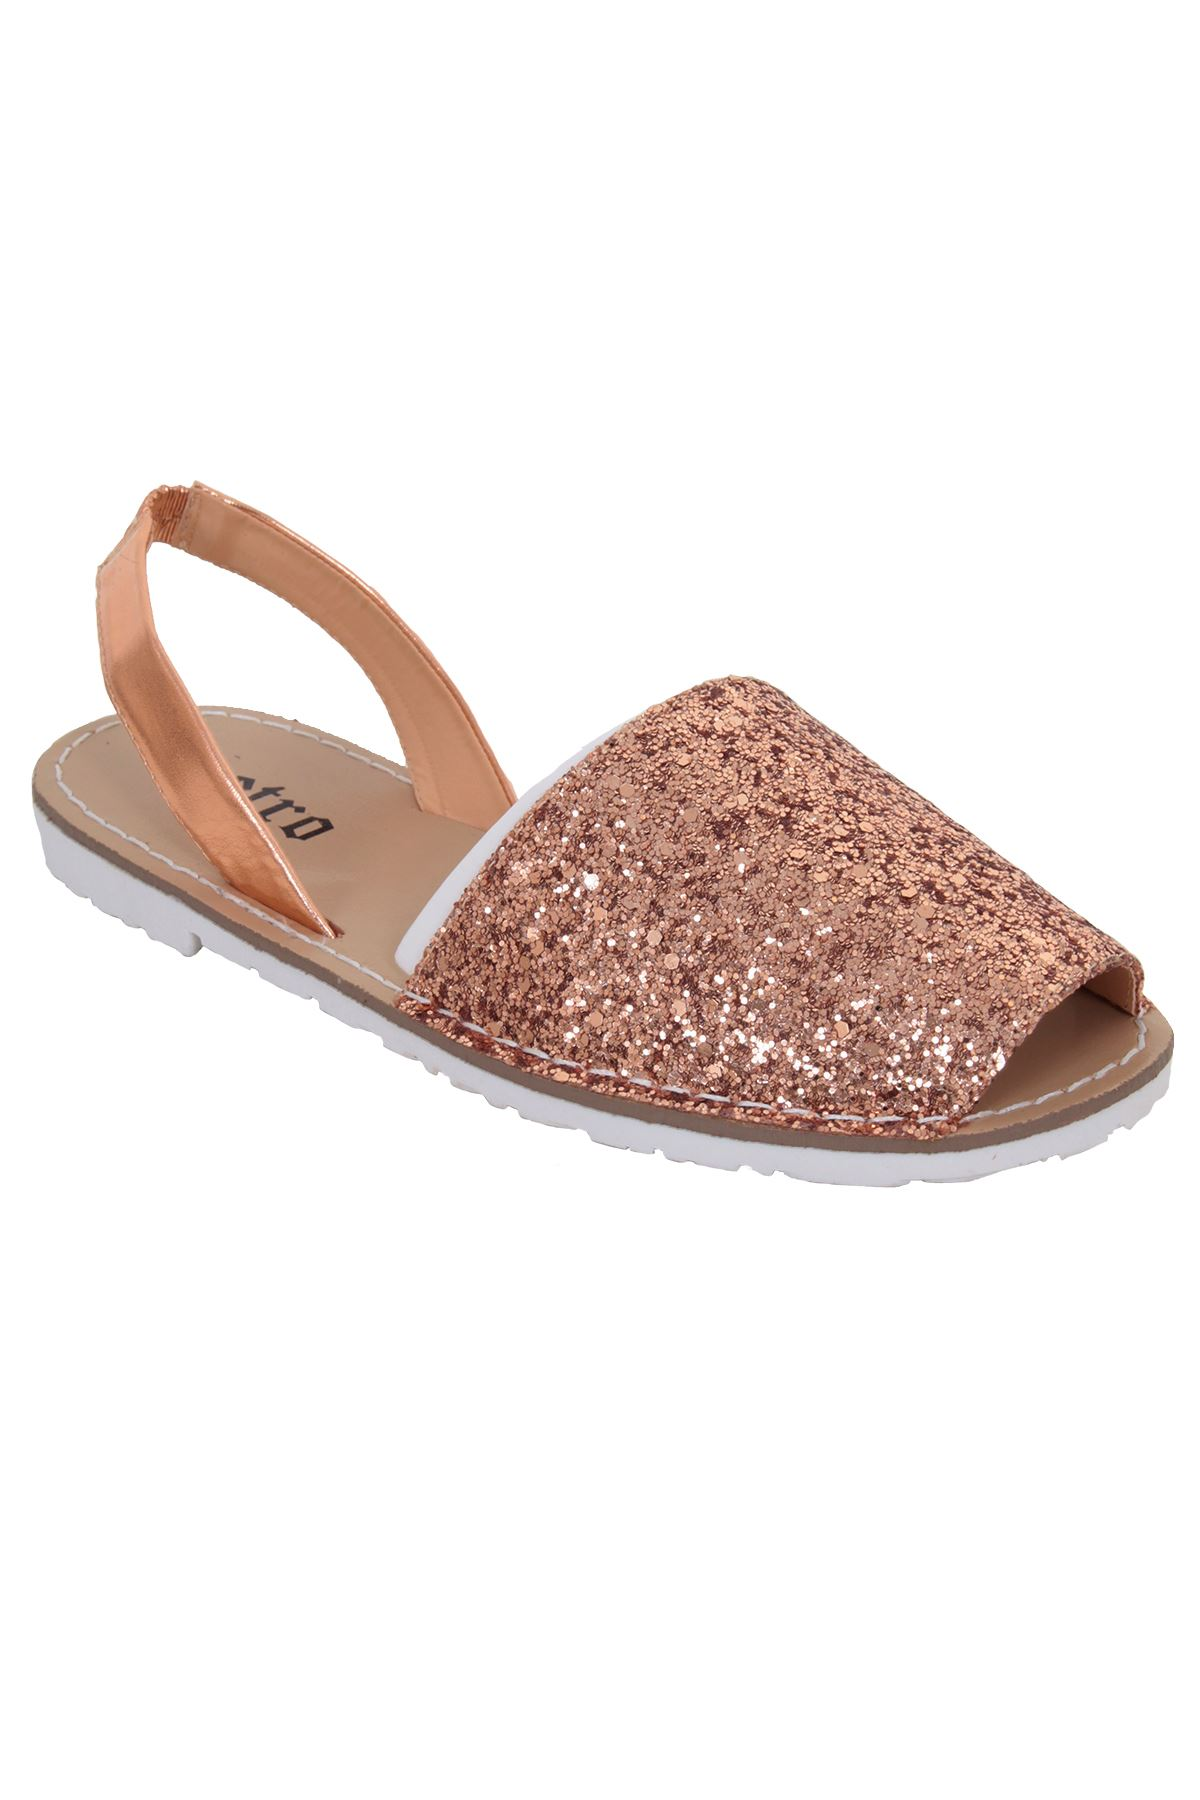 f3400a335 Ladies Sling Back Menorcan Peep Toe Glitter Mules Sandals Flat Beach Shoes